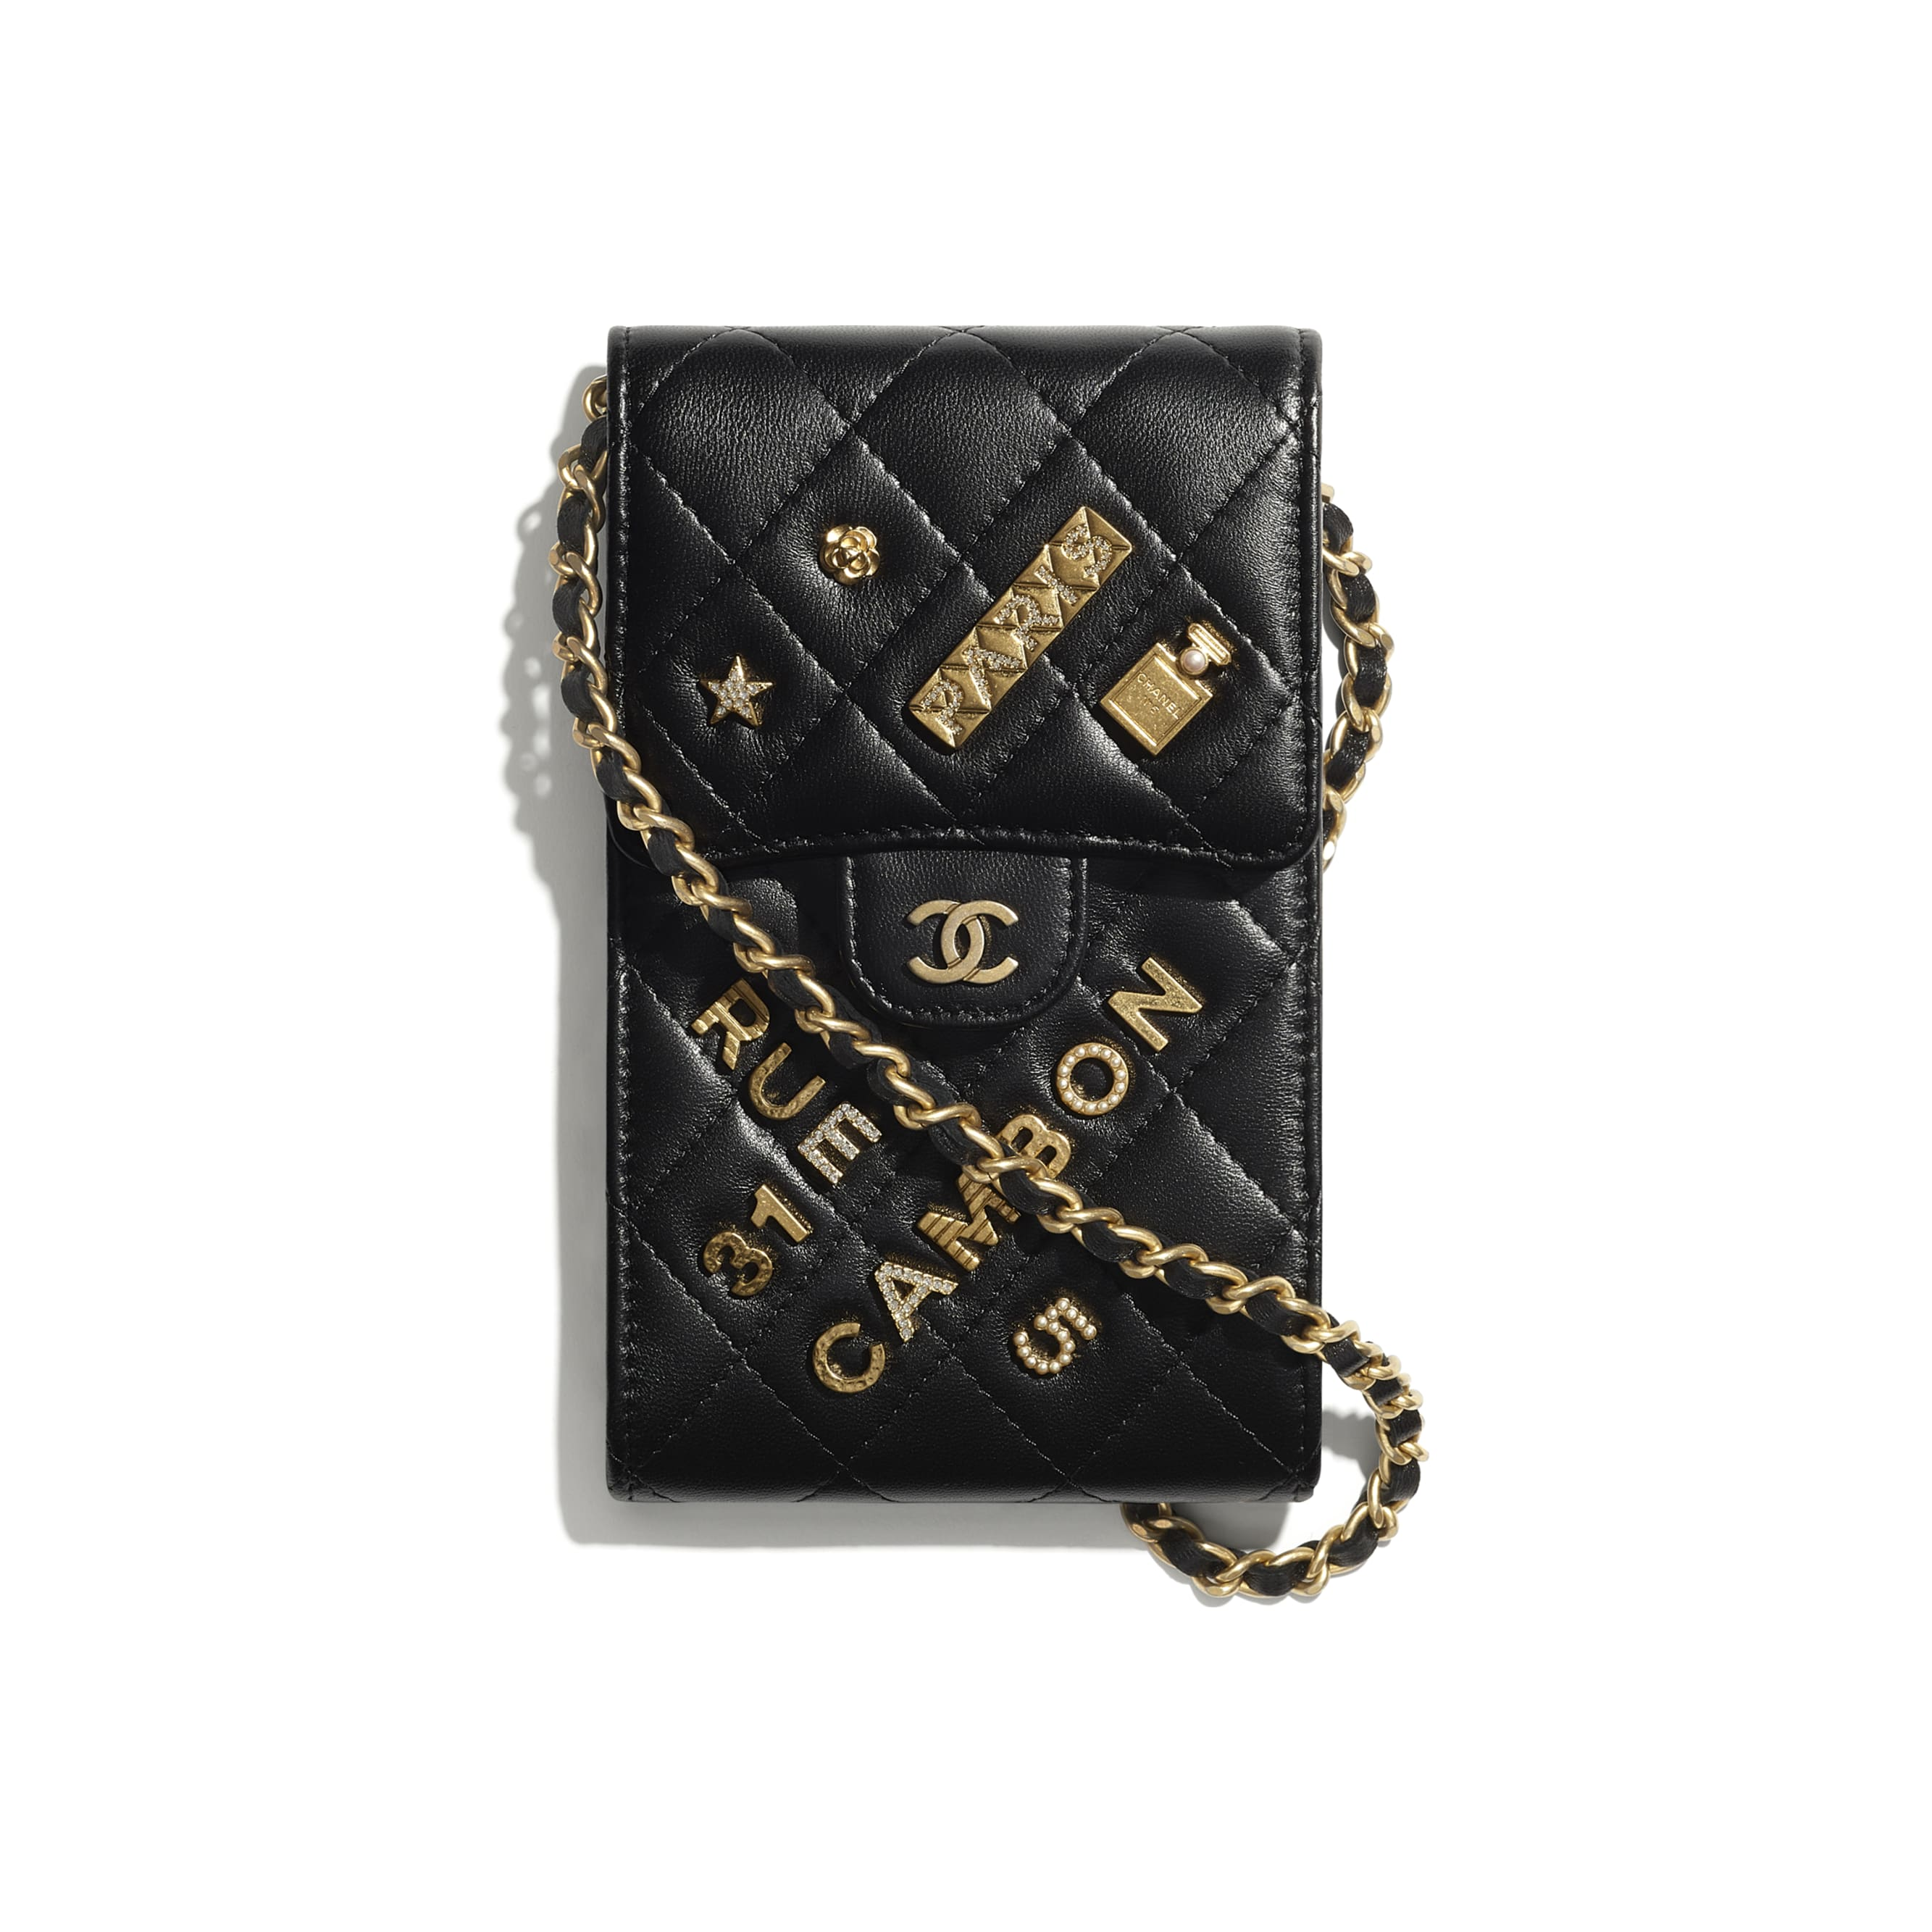 Phone Holder With Chain - Black - Lambskin - CHANEL - Default view - see standard sized version